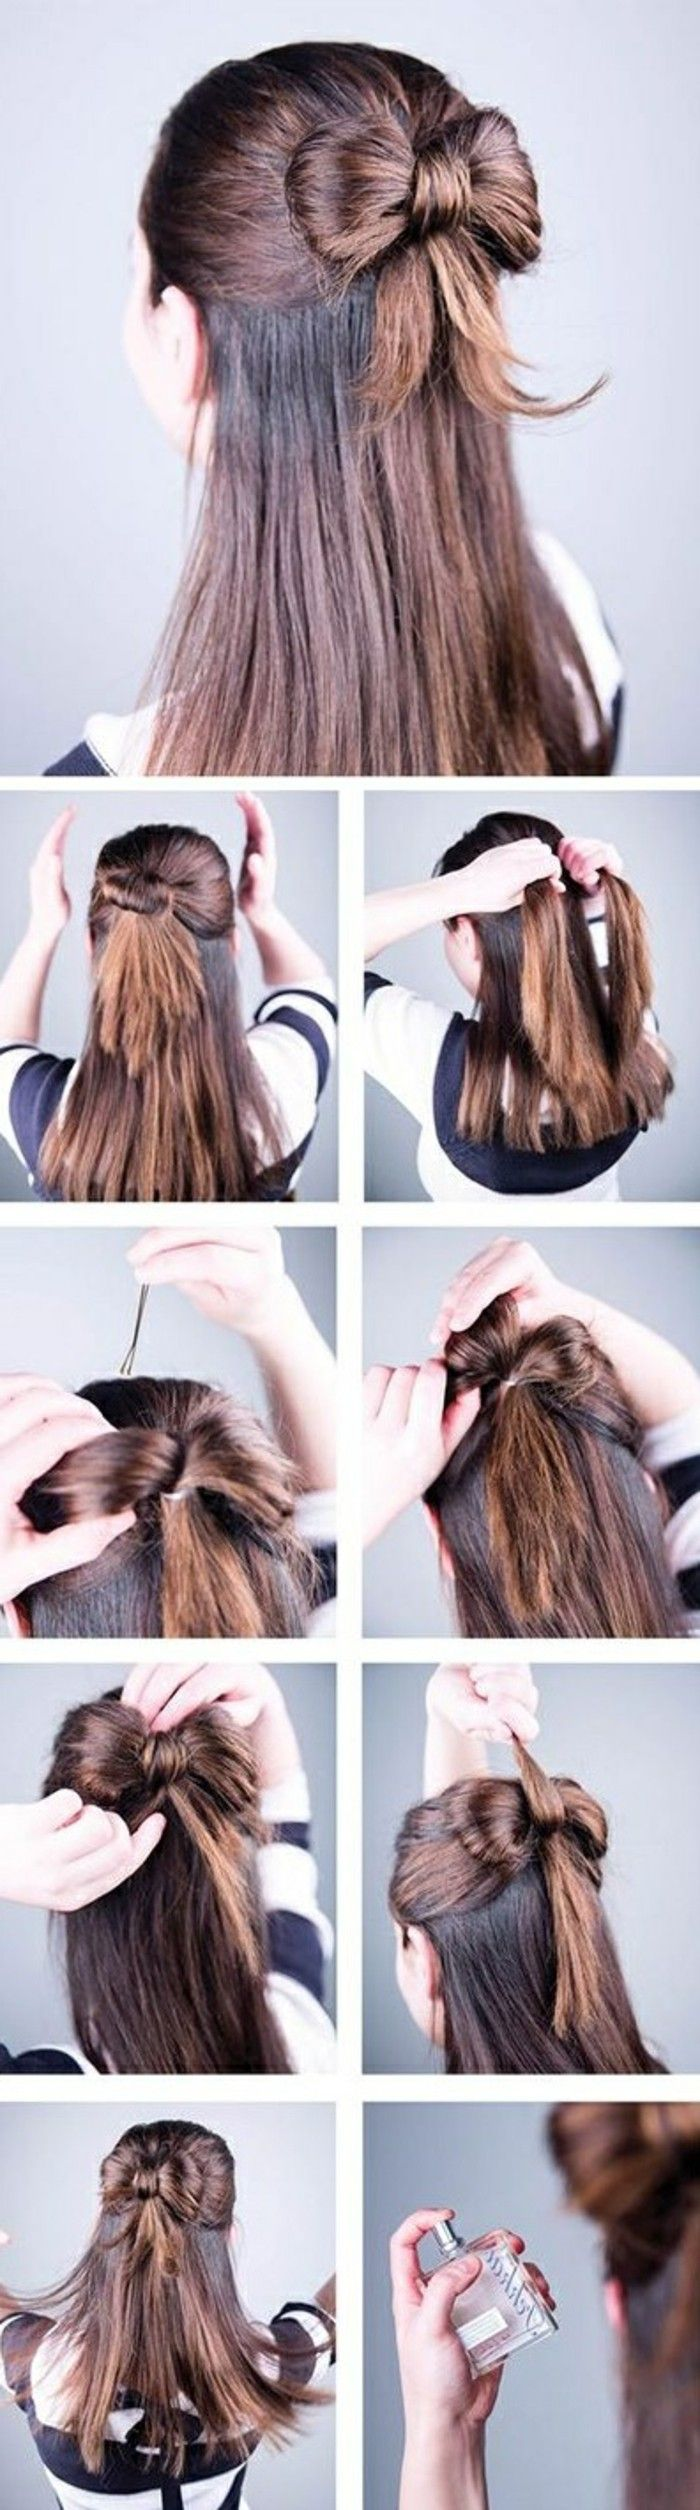 ▷ 1001 + ideas for beautiful hairstyles Plus instructions for making your own – Haarfrisuren